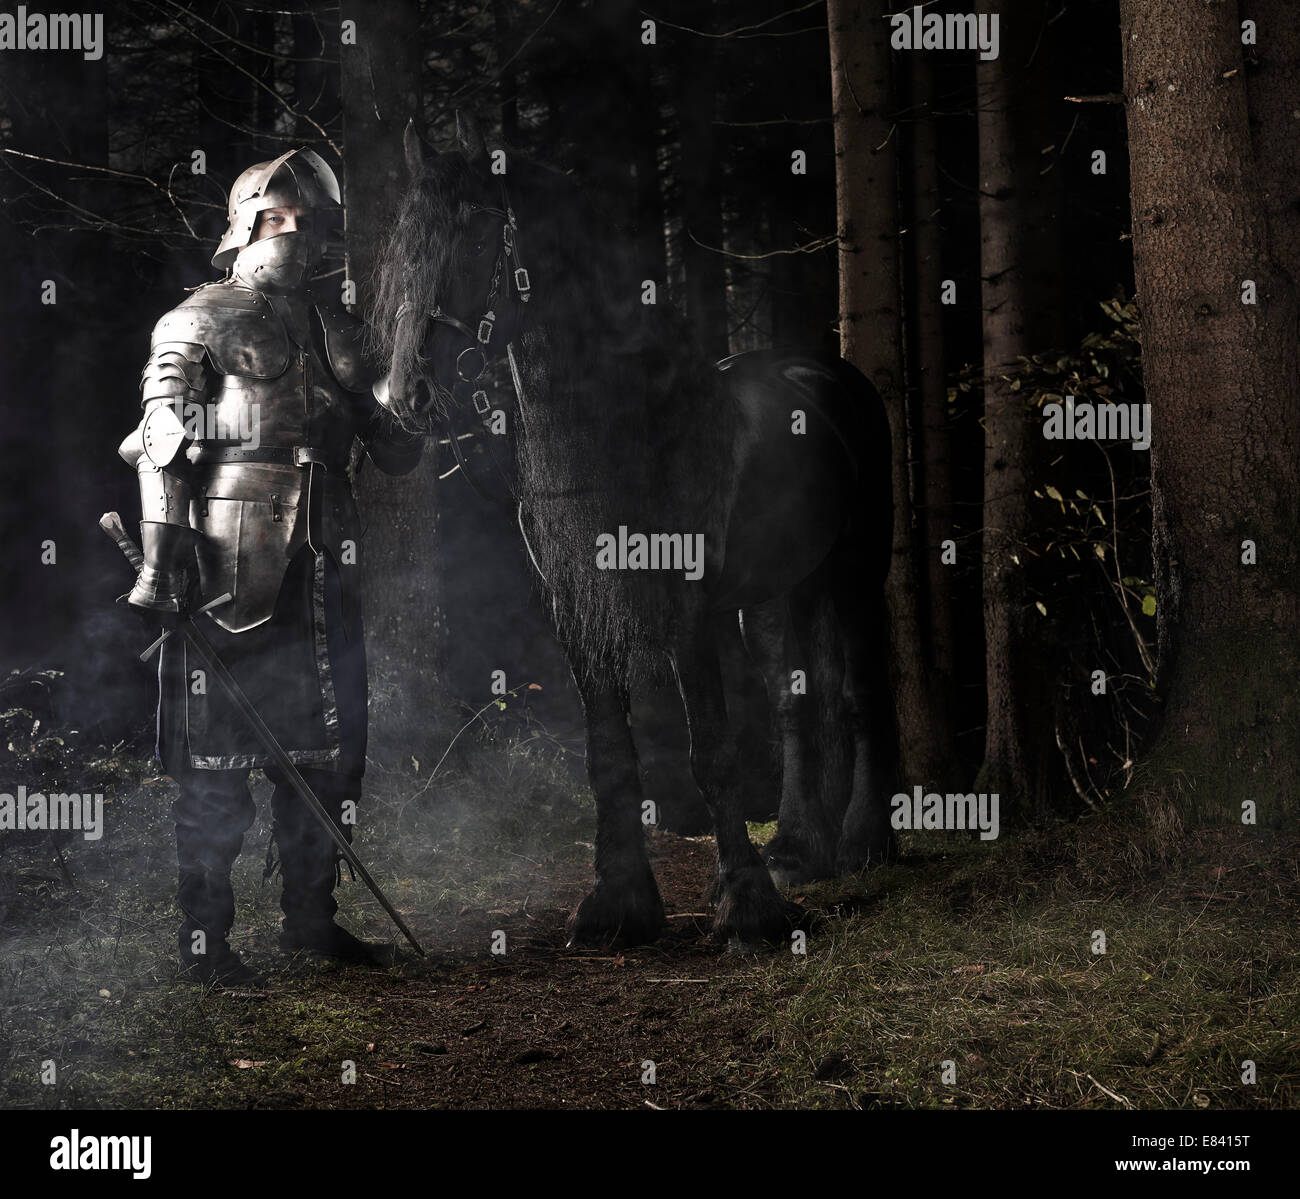 Knight wearing armour standing beside his horse in the woods, Tyrol, Austria - Stock Image